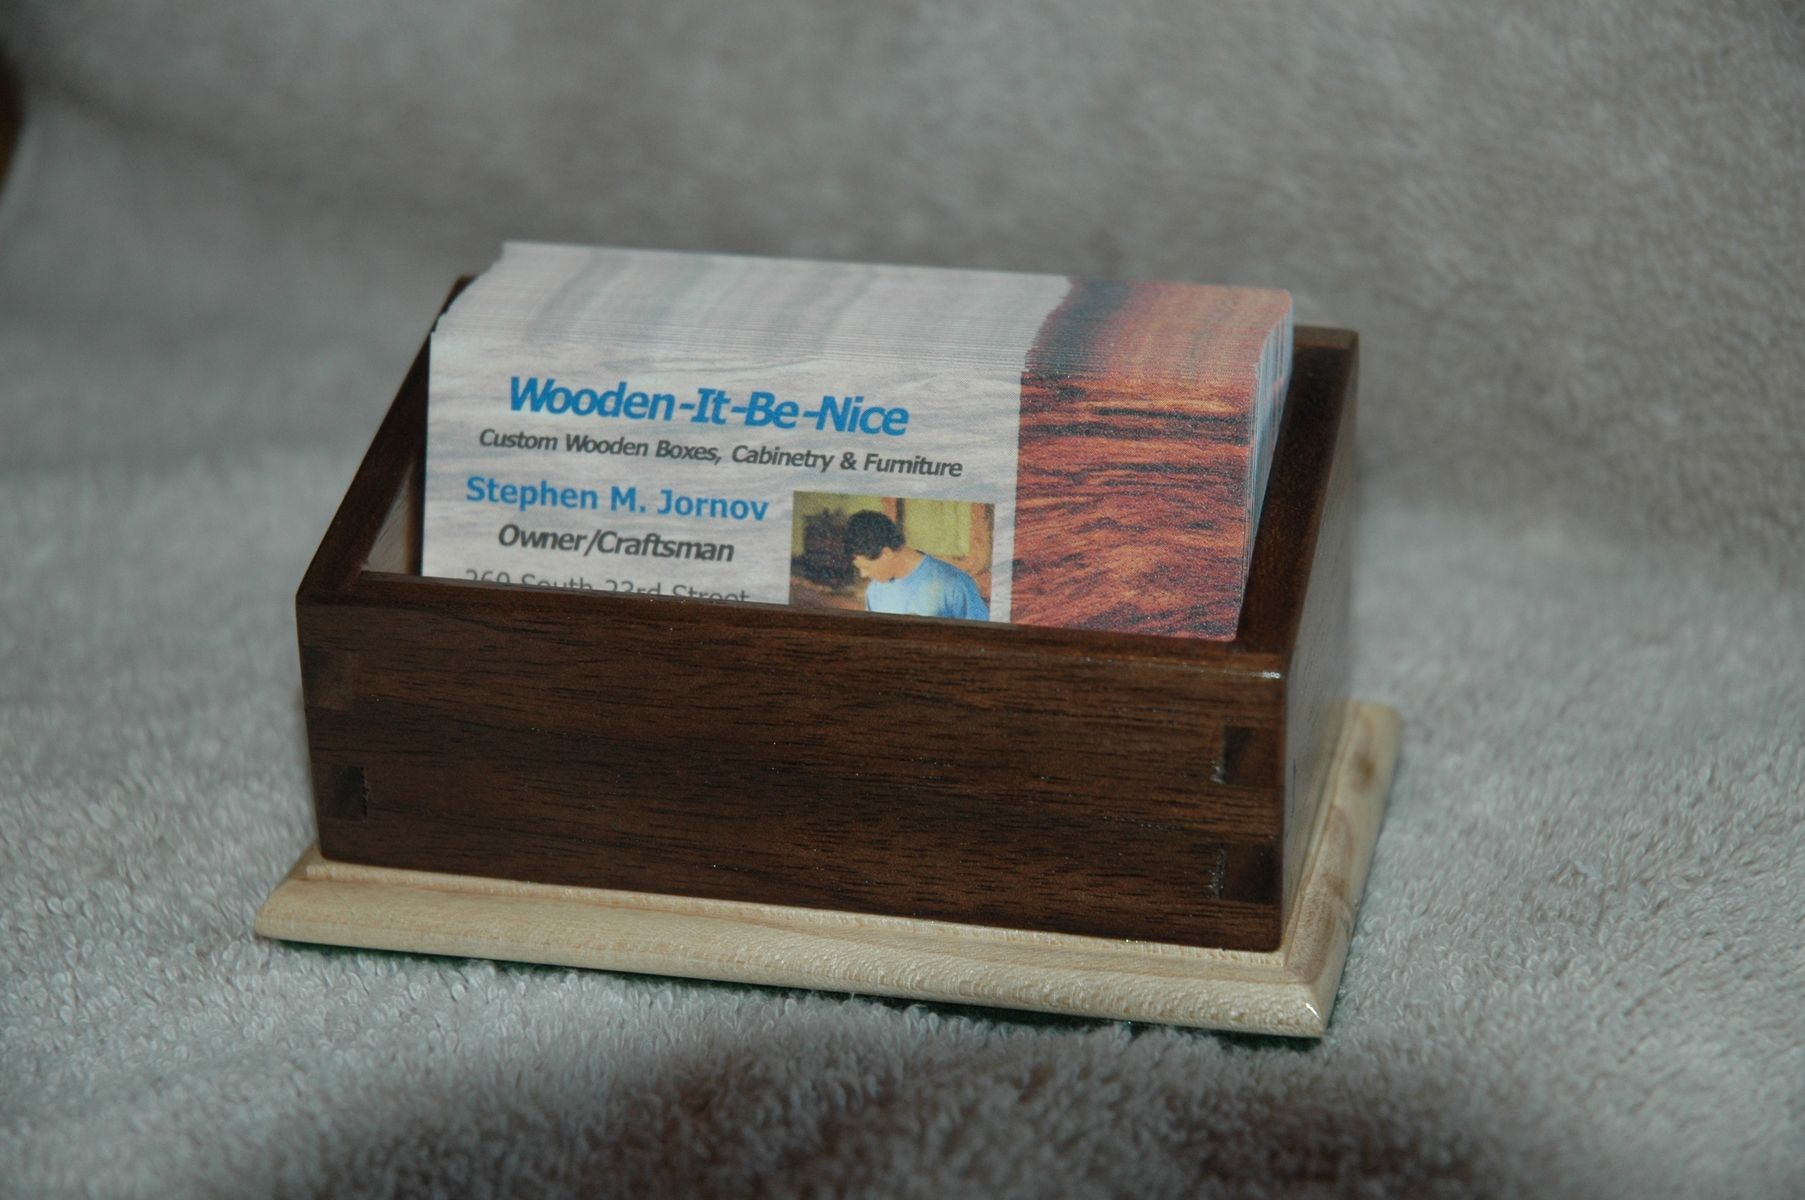 Handmade Business Card Holder by Wooden-It-Be-Nice | CustomMade.com